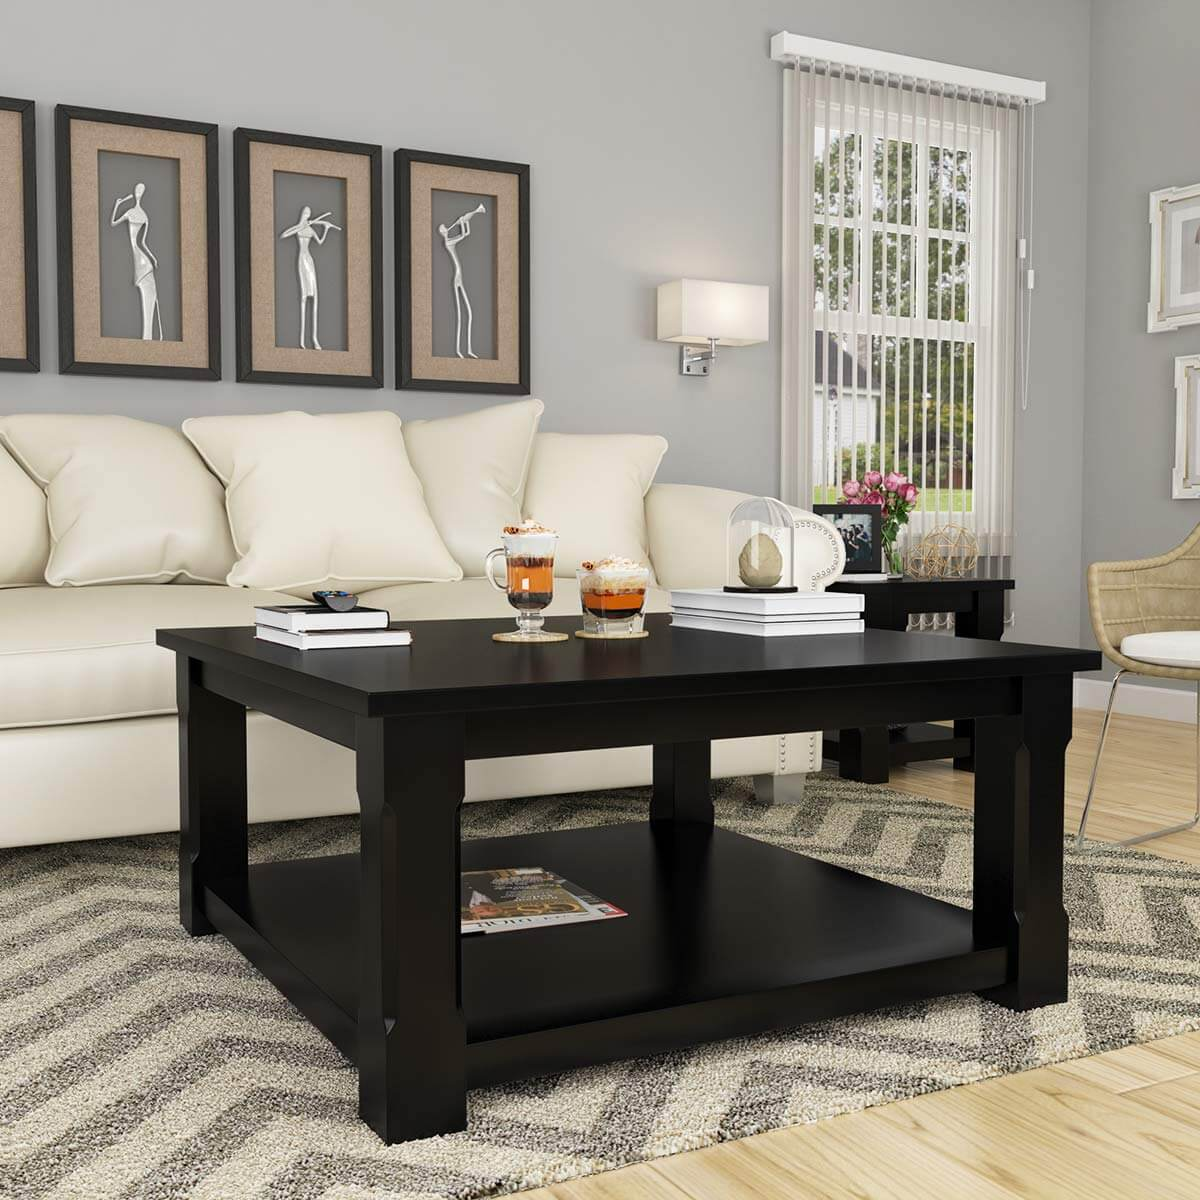 Rustic solid wood black 2 tier square shaker coffee table Black wooden coffee tables